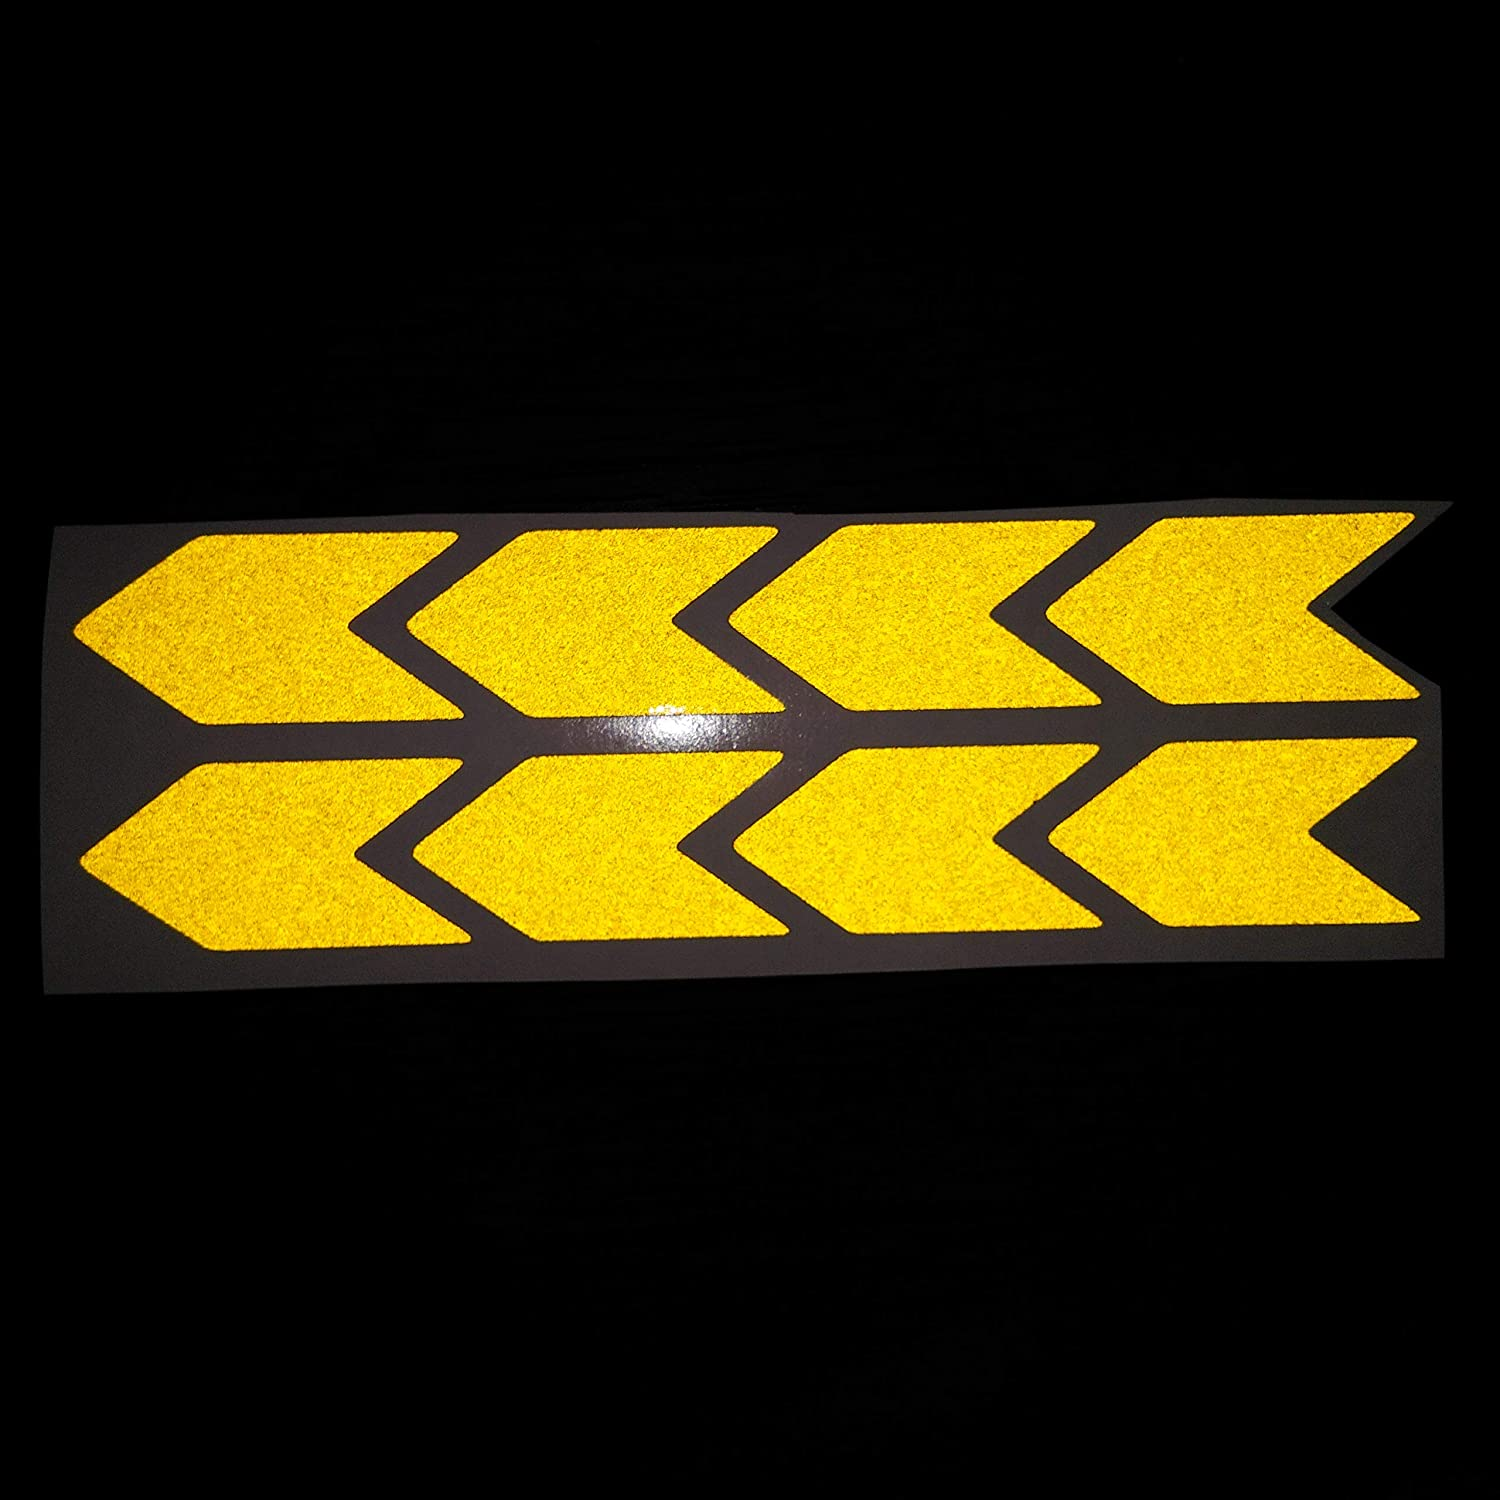 Chevron Shaped Yellow Reflective Sticker Decal Arrow 8x 25x50 mm Sign With Flash Night PVC Vinyl Sport Motorbike Helmet Motorcycle Bike Racing Car Badge Door Window Tailgate Truck Trunk Side Rear Emblem Decals Laptop Notebook Mac